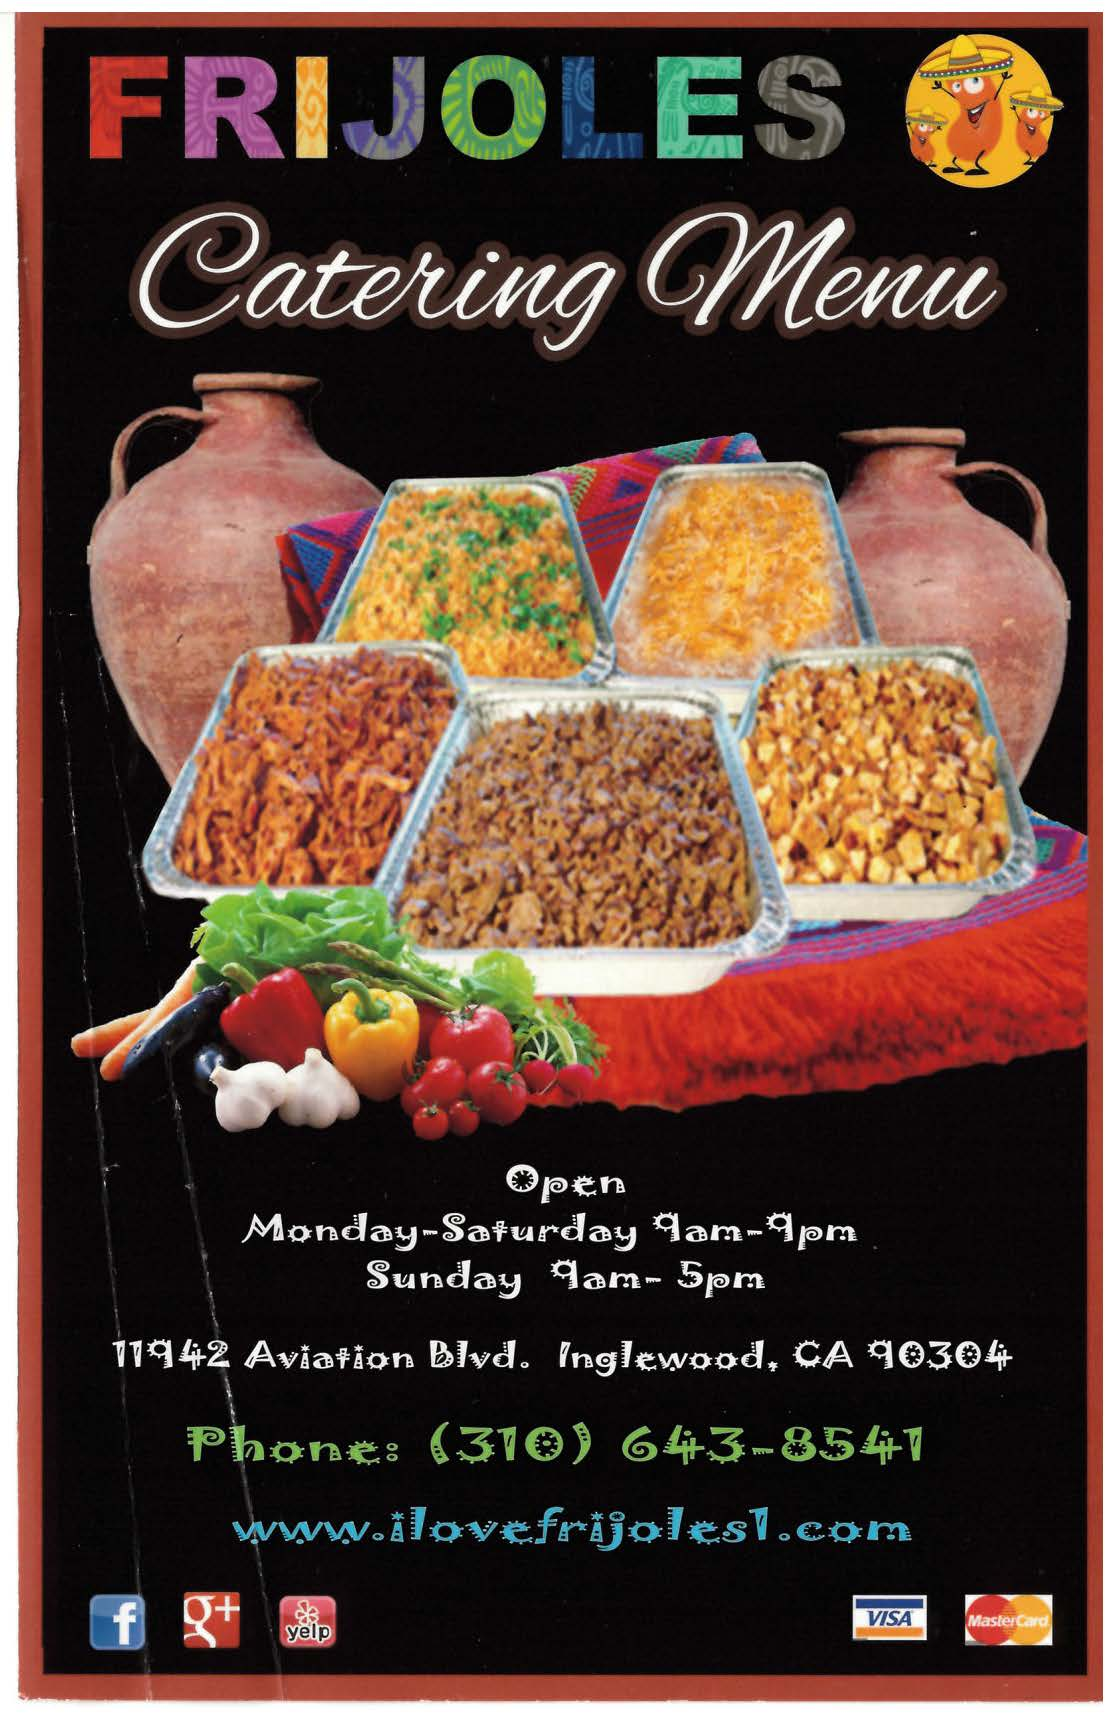 Catering frijoles restaurant dont stress out about your next partys menu bring in authentic mexican food or call us and tell us what you need for your fiesta forumfinder Choice Image